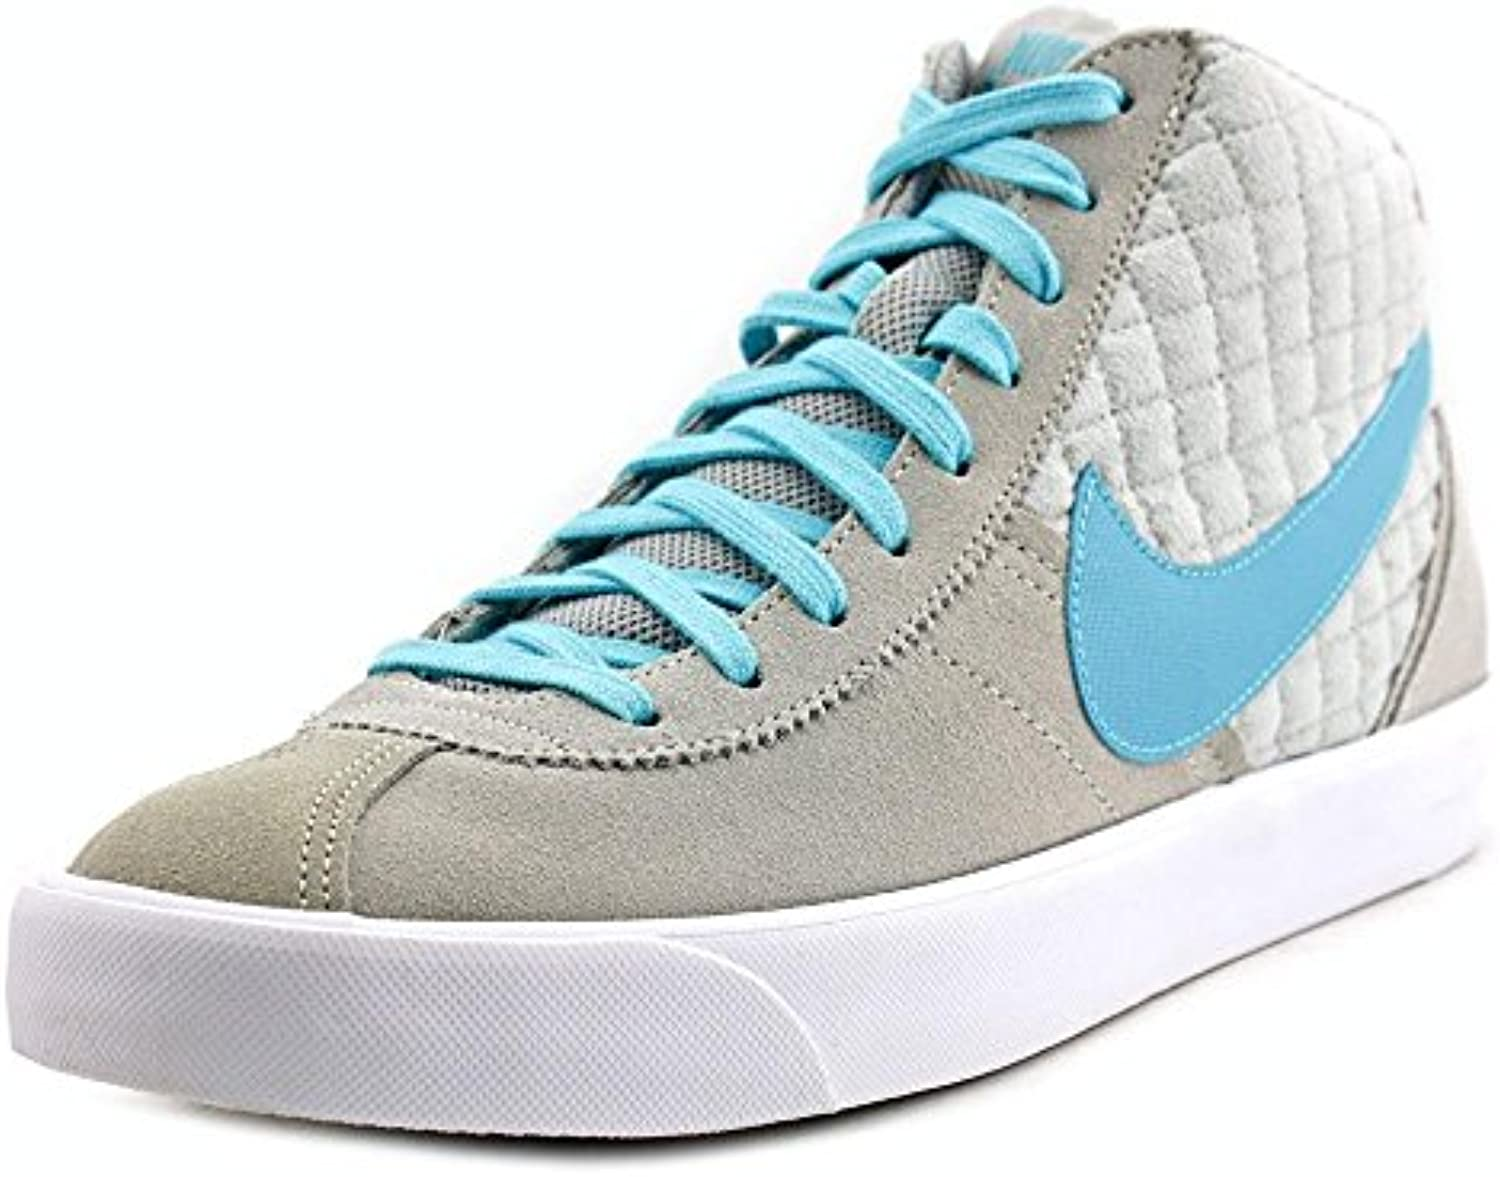 monsieur madame nike bruin mi - baskets fashion belle respirable apparence respirable belle chaussures e4b7ec